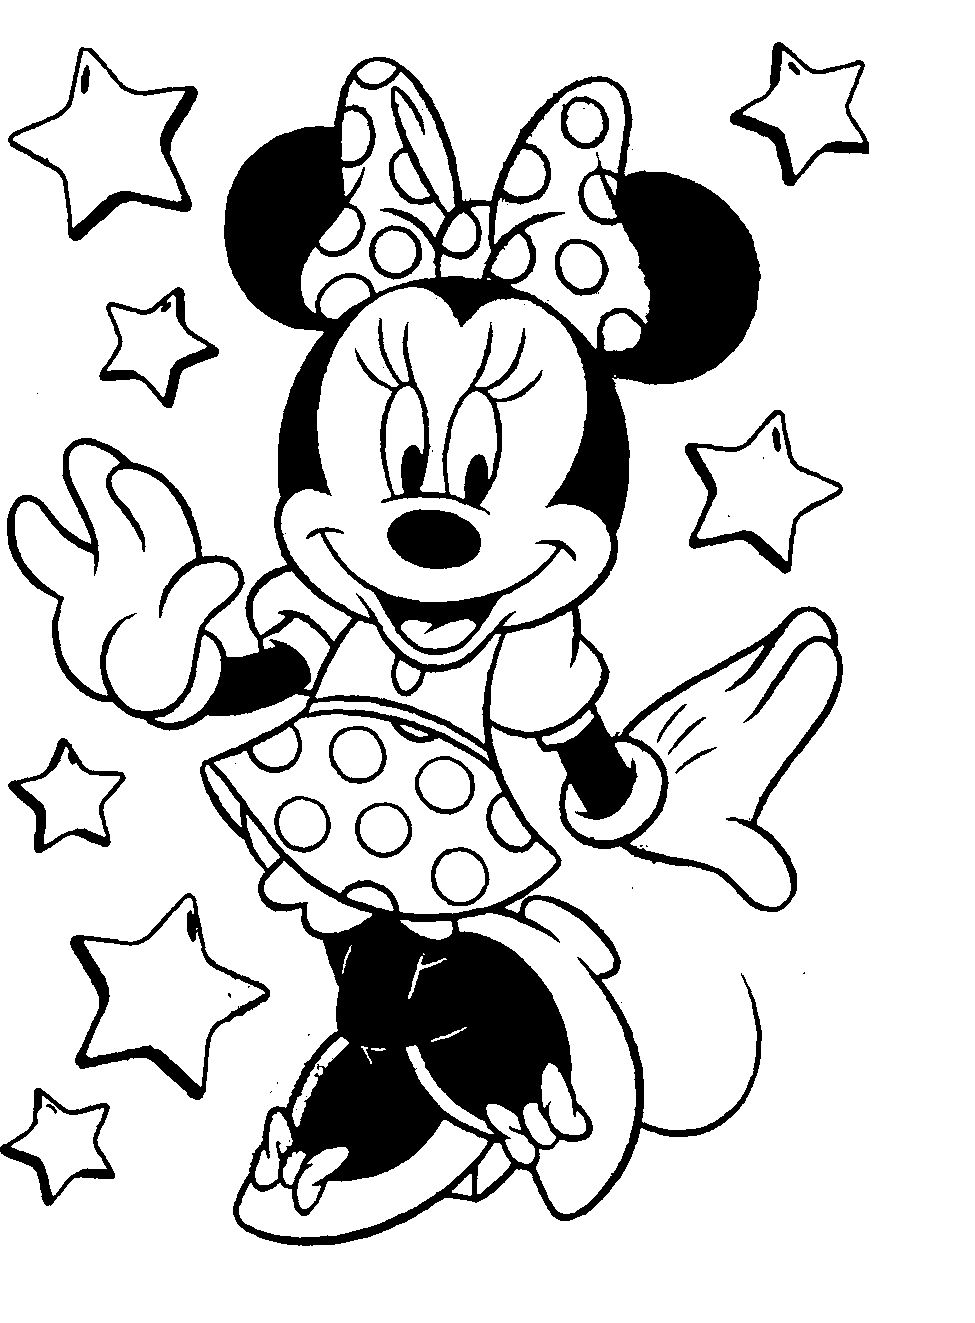 coloring pictures of minnie mouse - Google Search | Coloring ...